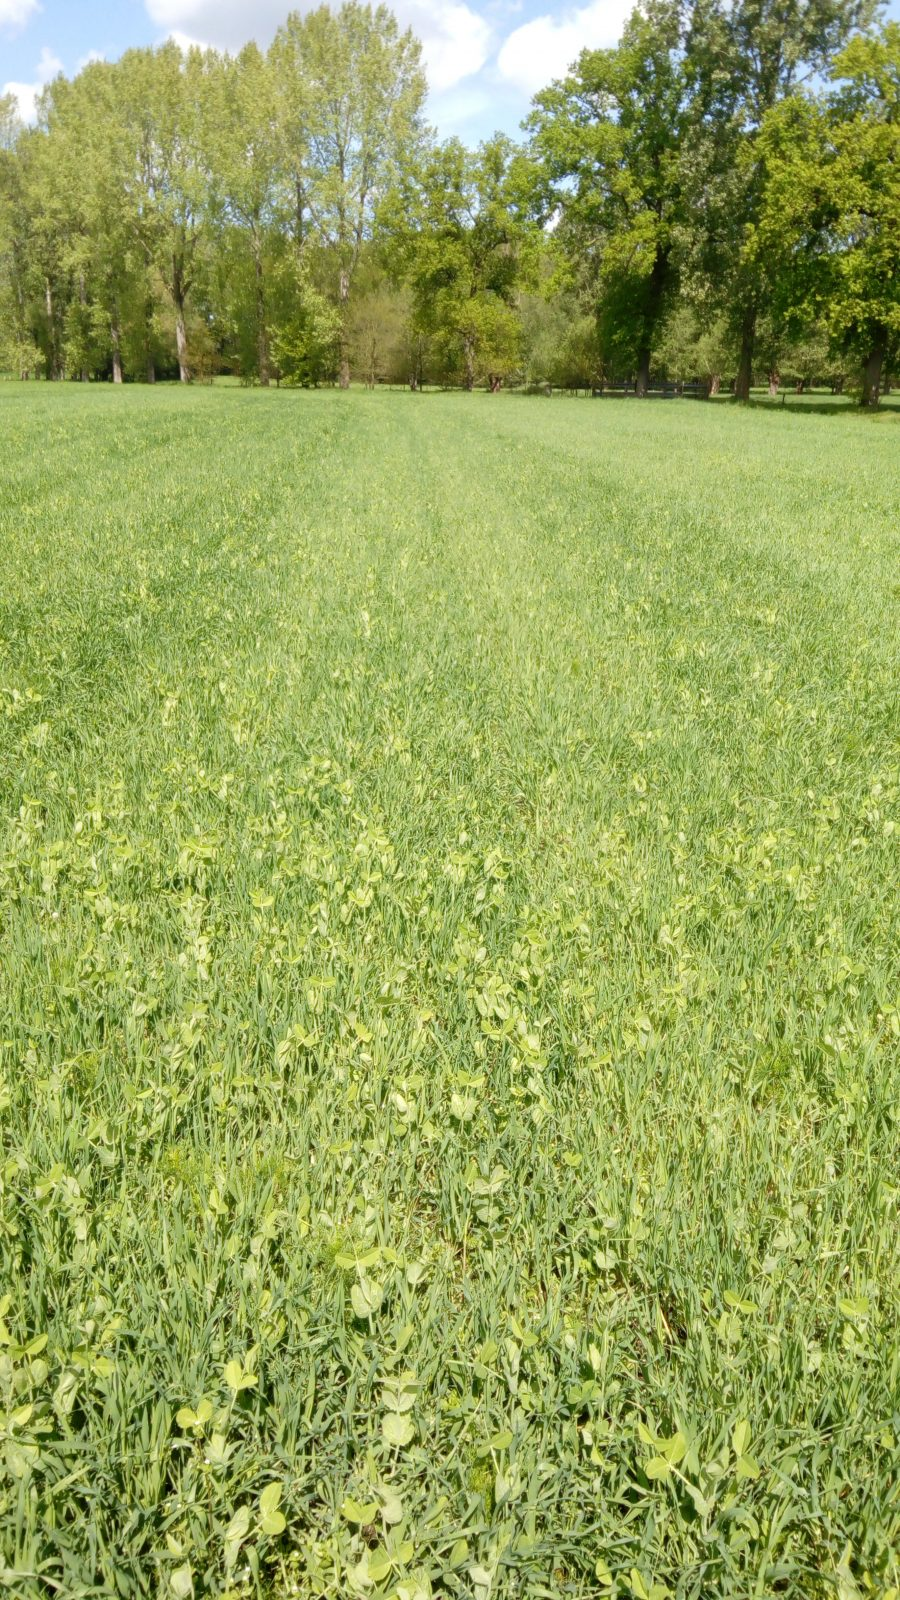 mixed culture of pea and malting barley